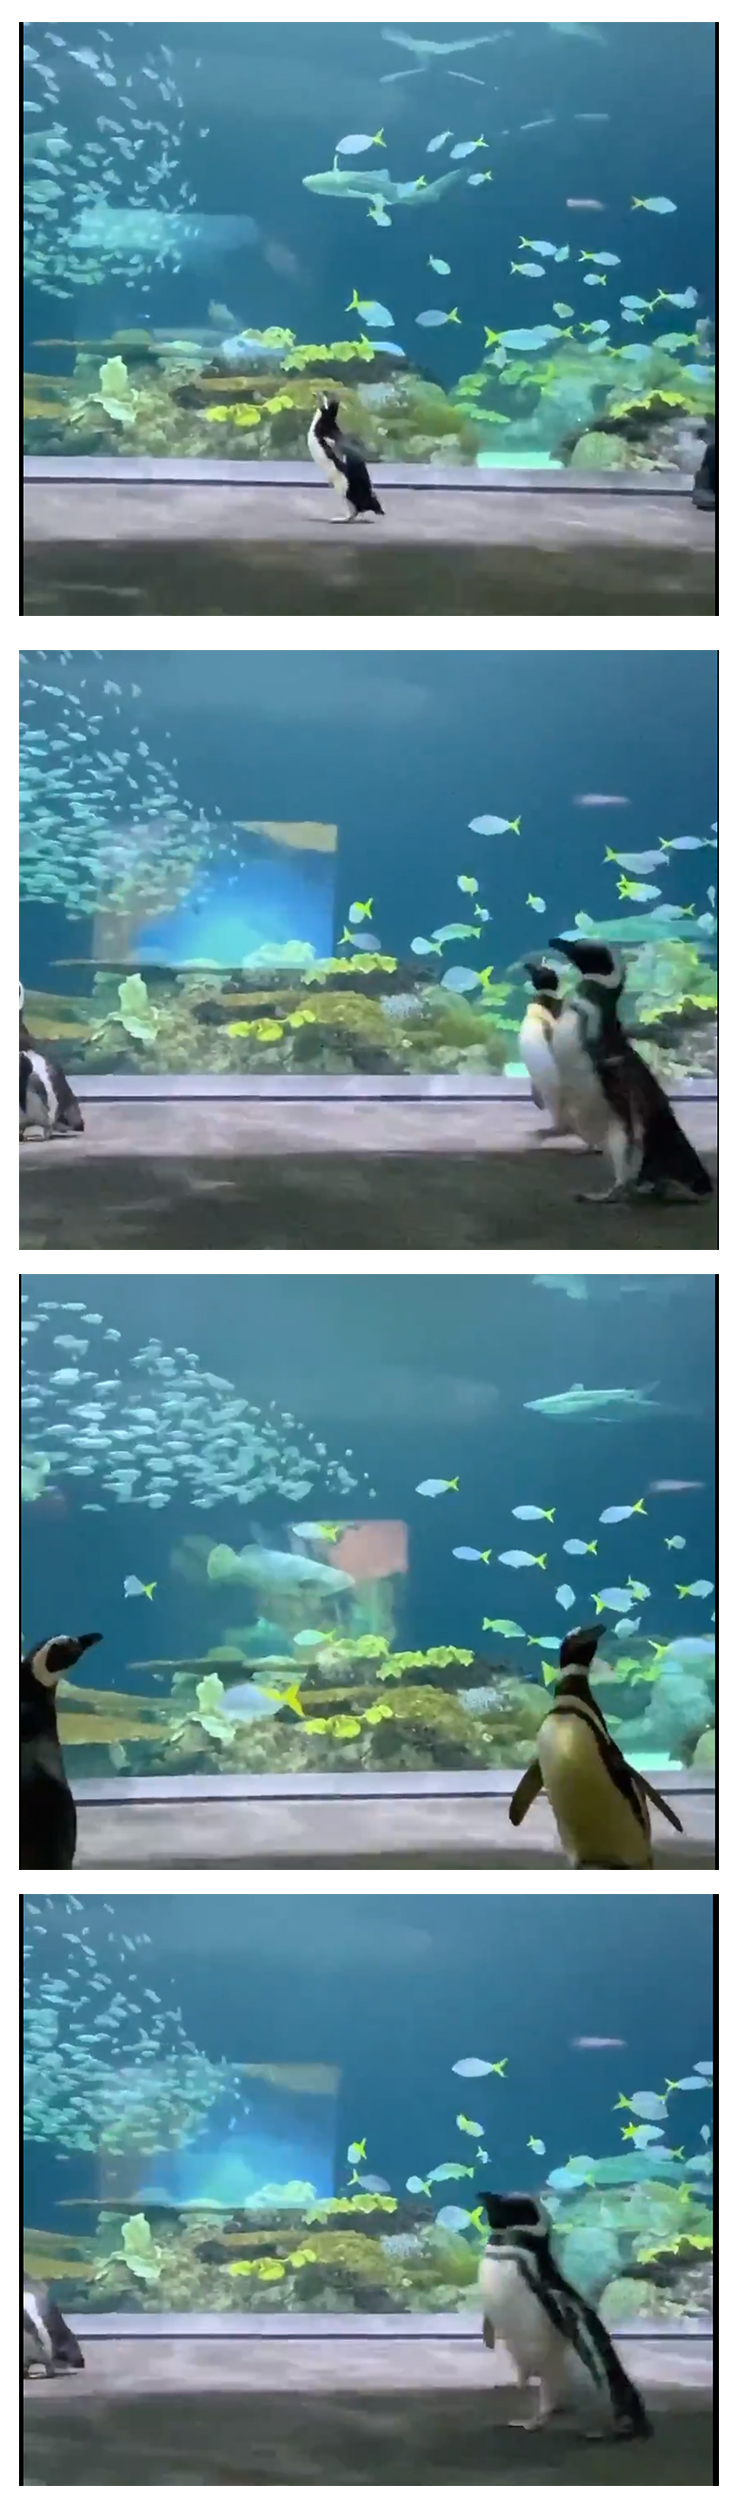 wellington leads a group of penguins through the aquarium premises